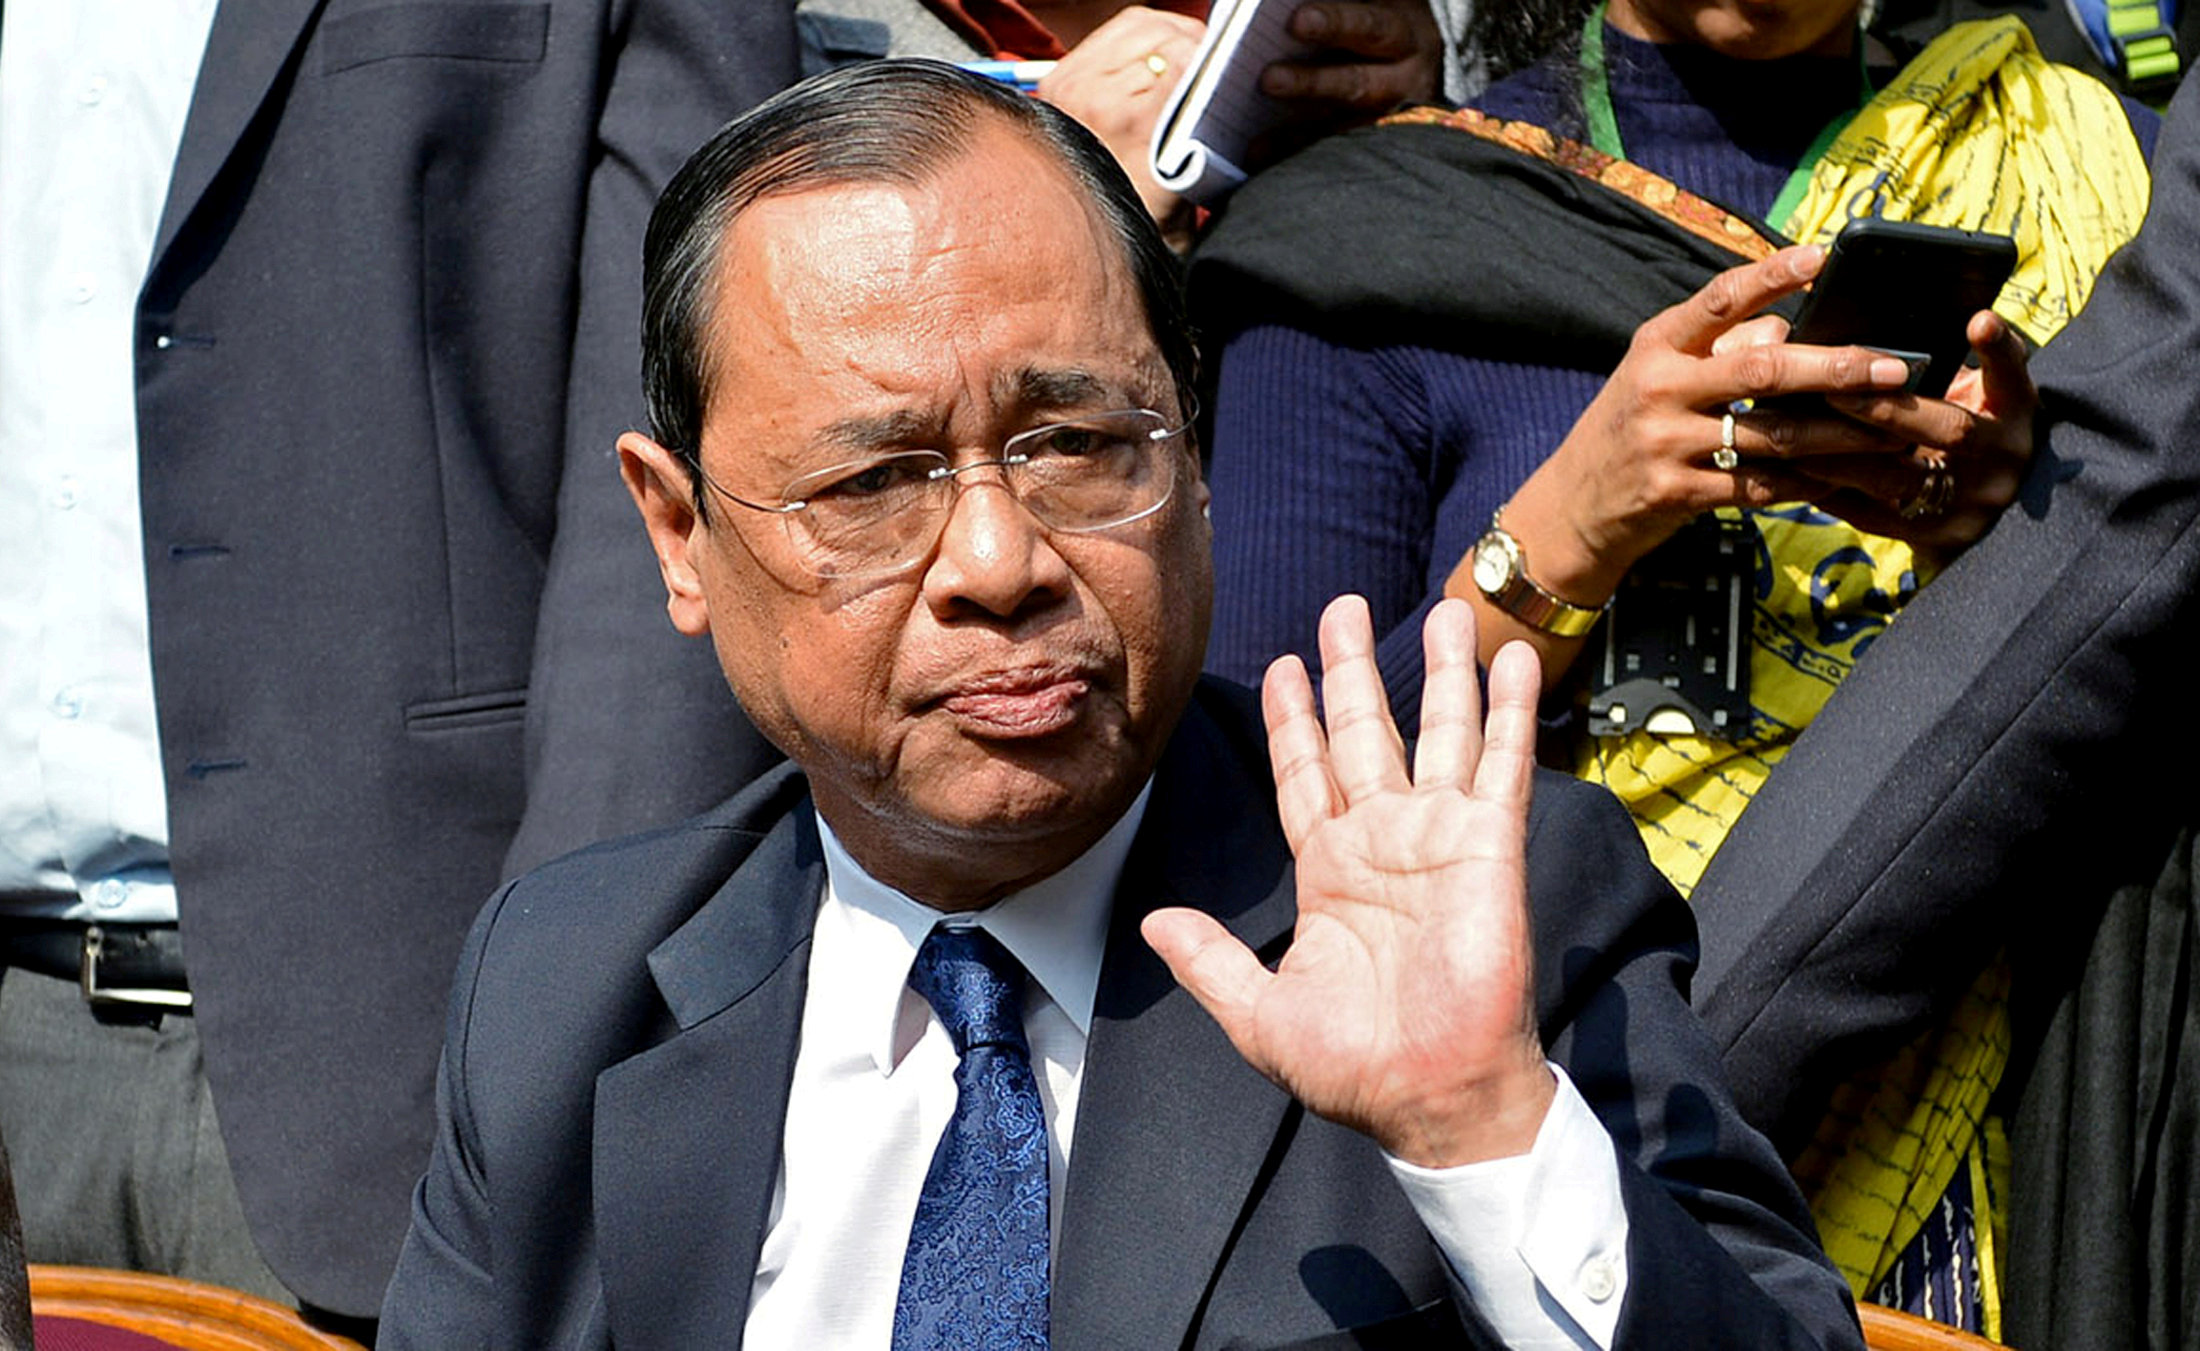 Ranjan Gogoi, a Supreme Court judge, gestures as he addresses the media at a news conference in New Delhi. (REUTERS/Stringer)